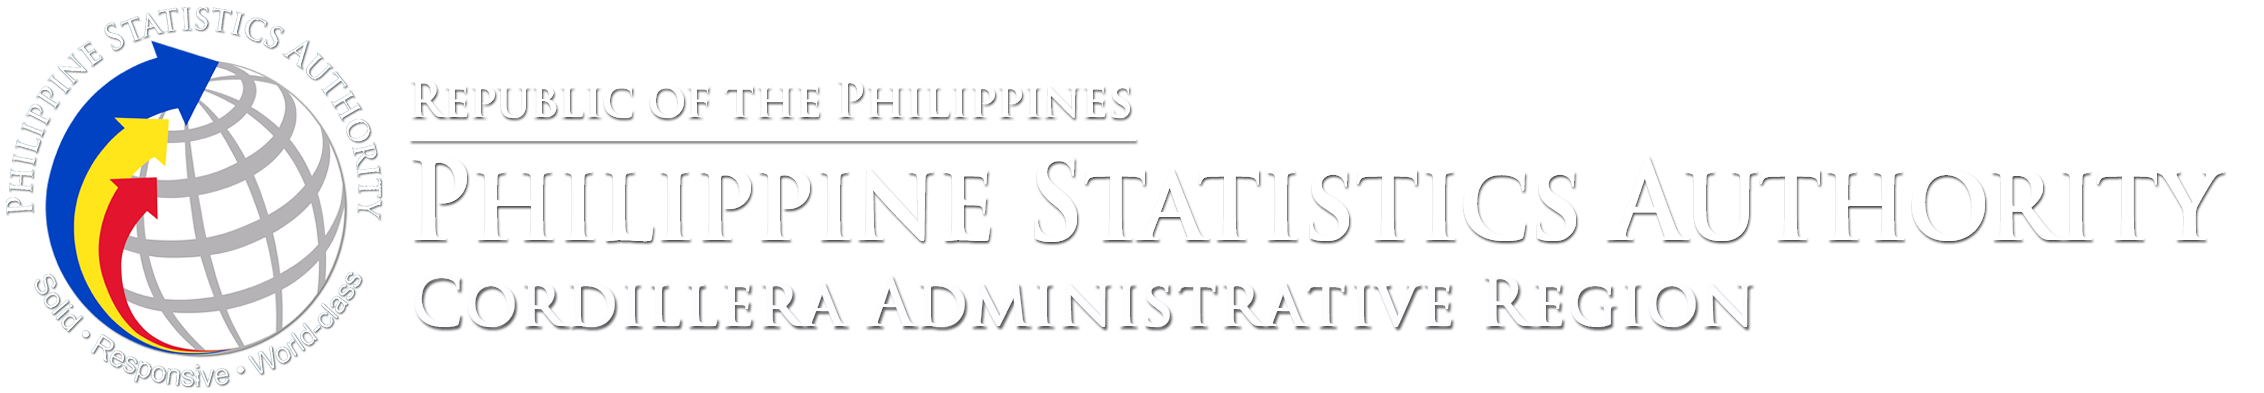 Philippine Statistics Authority-Cordillera Administrative Region